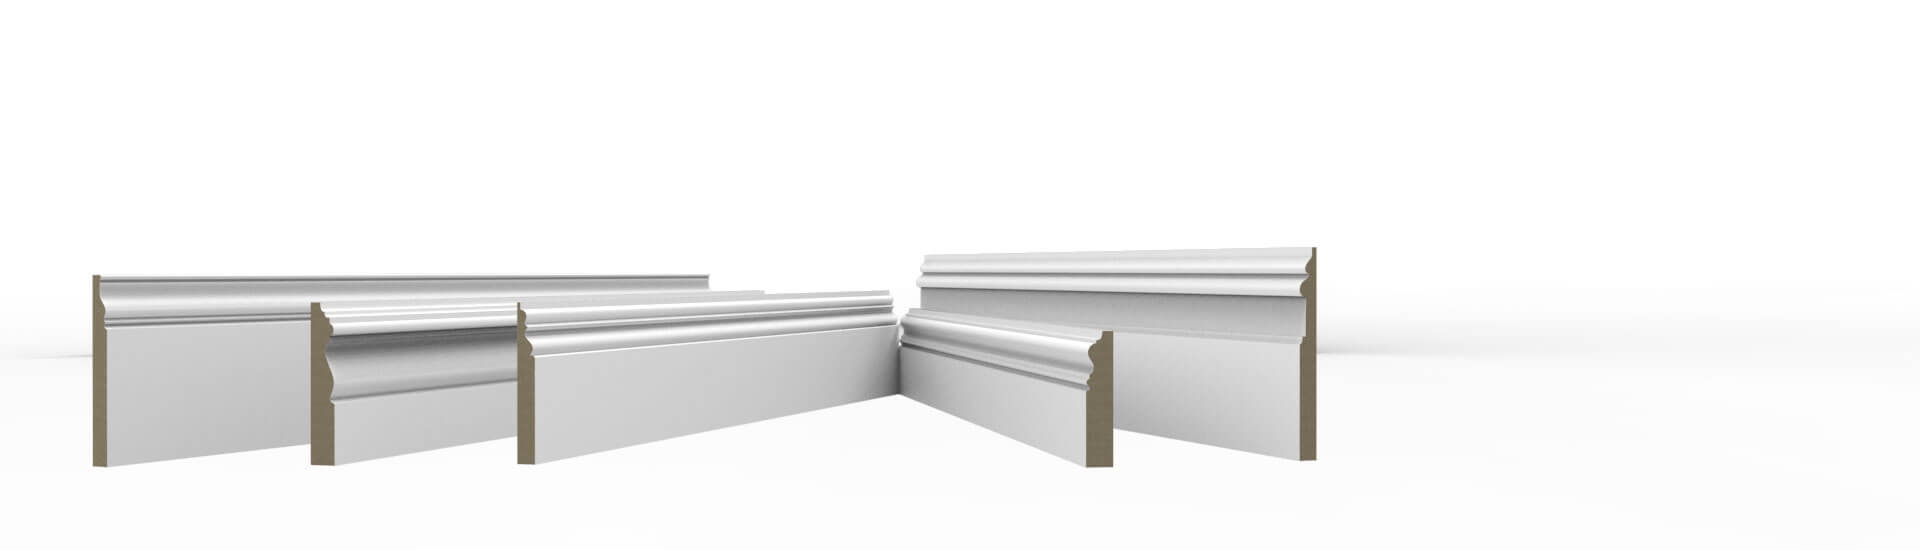 Period MDF Skirting Boards